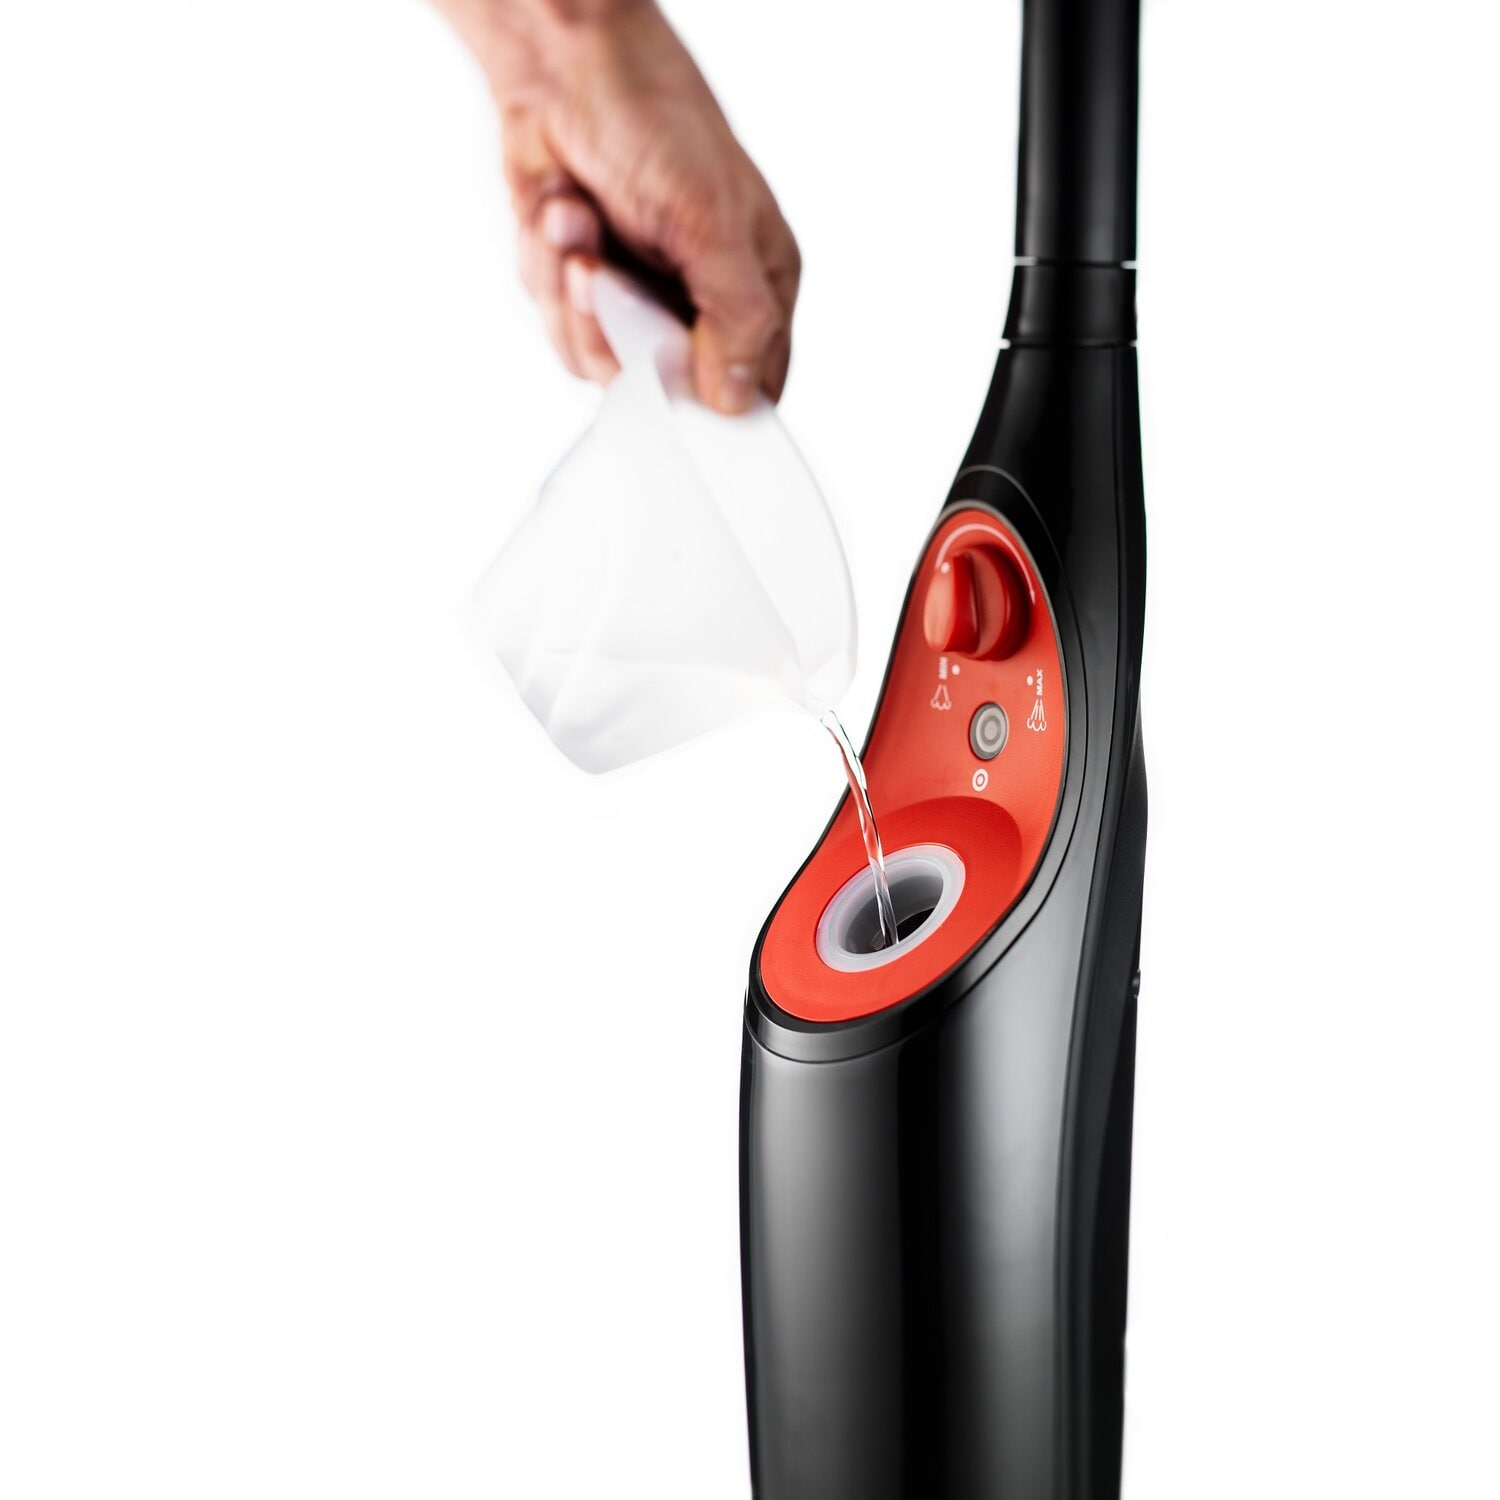 Mop parowy VILEDA STEAM cleaner